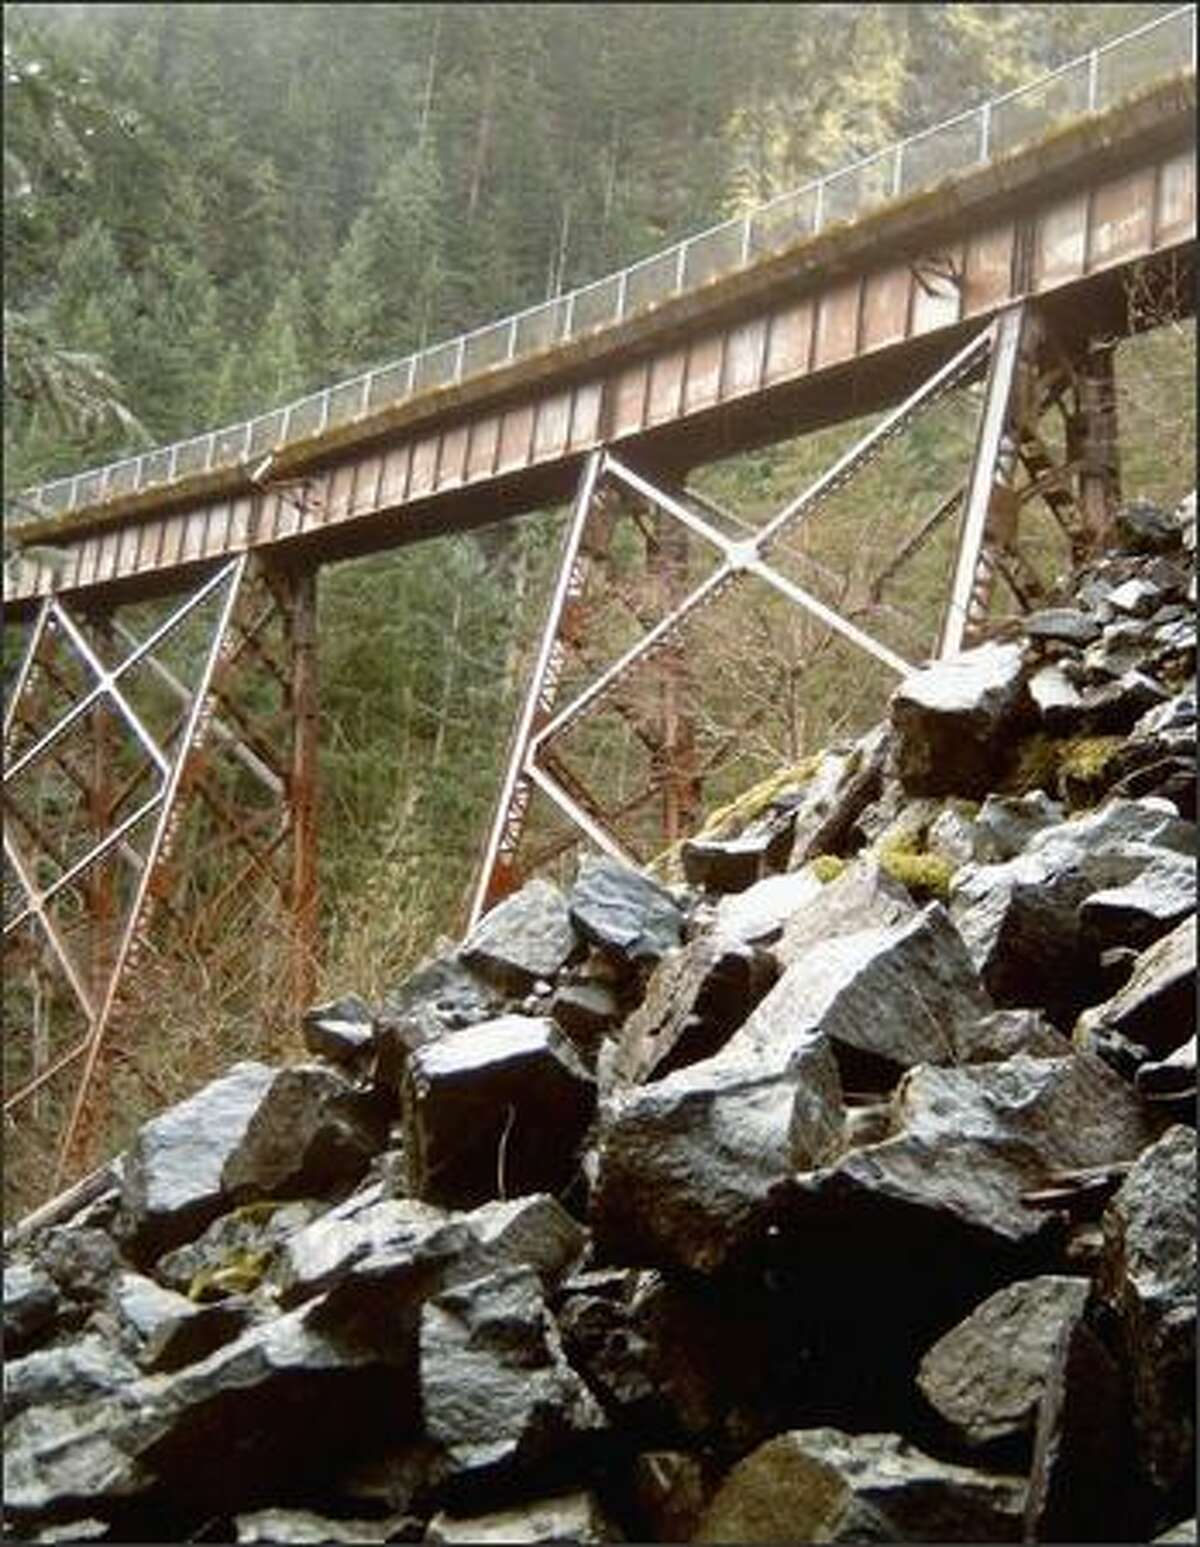 The Change Creek trestle, seen from the Change Creek climbers trail, also is accessible from the Iron Horse Trail.